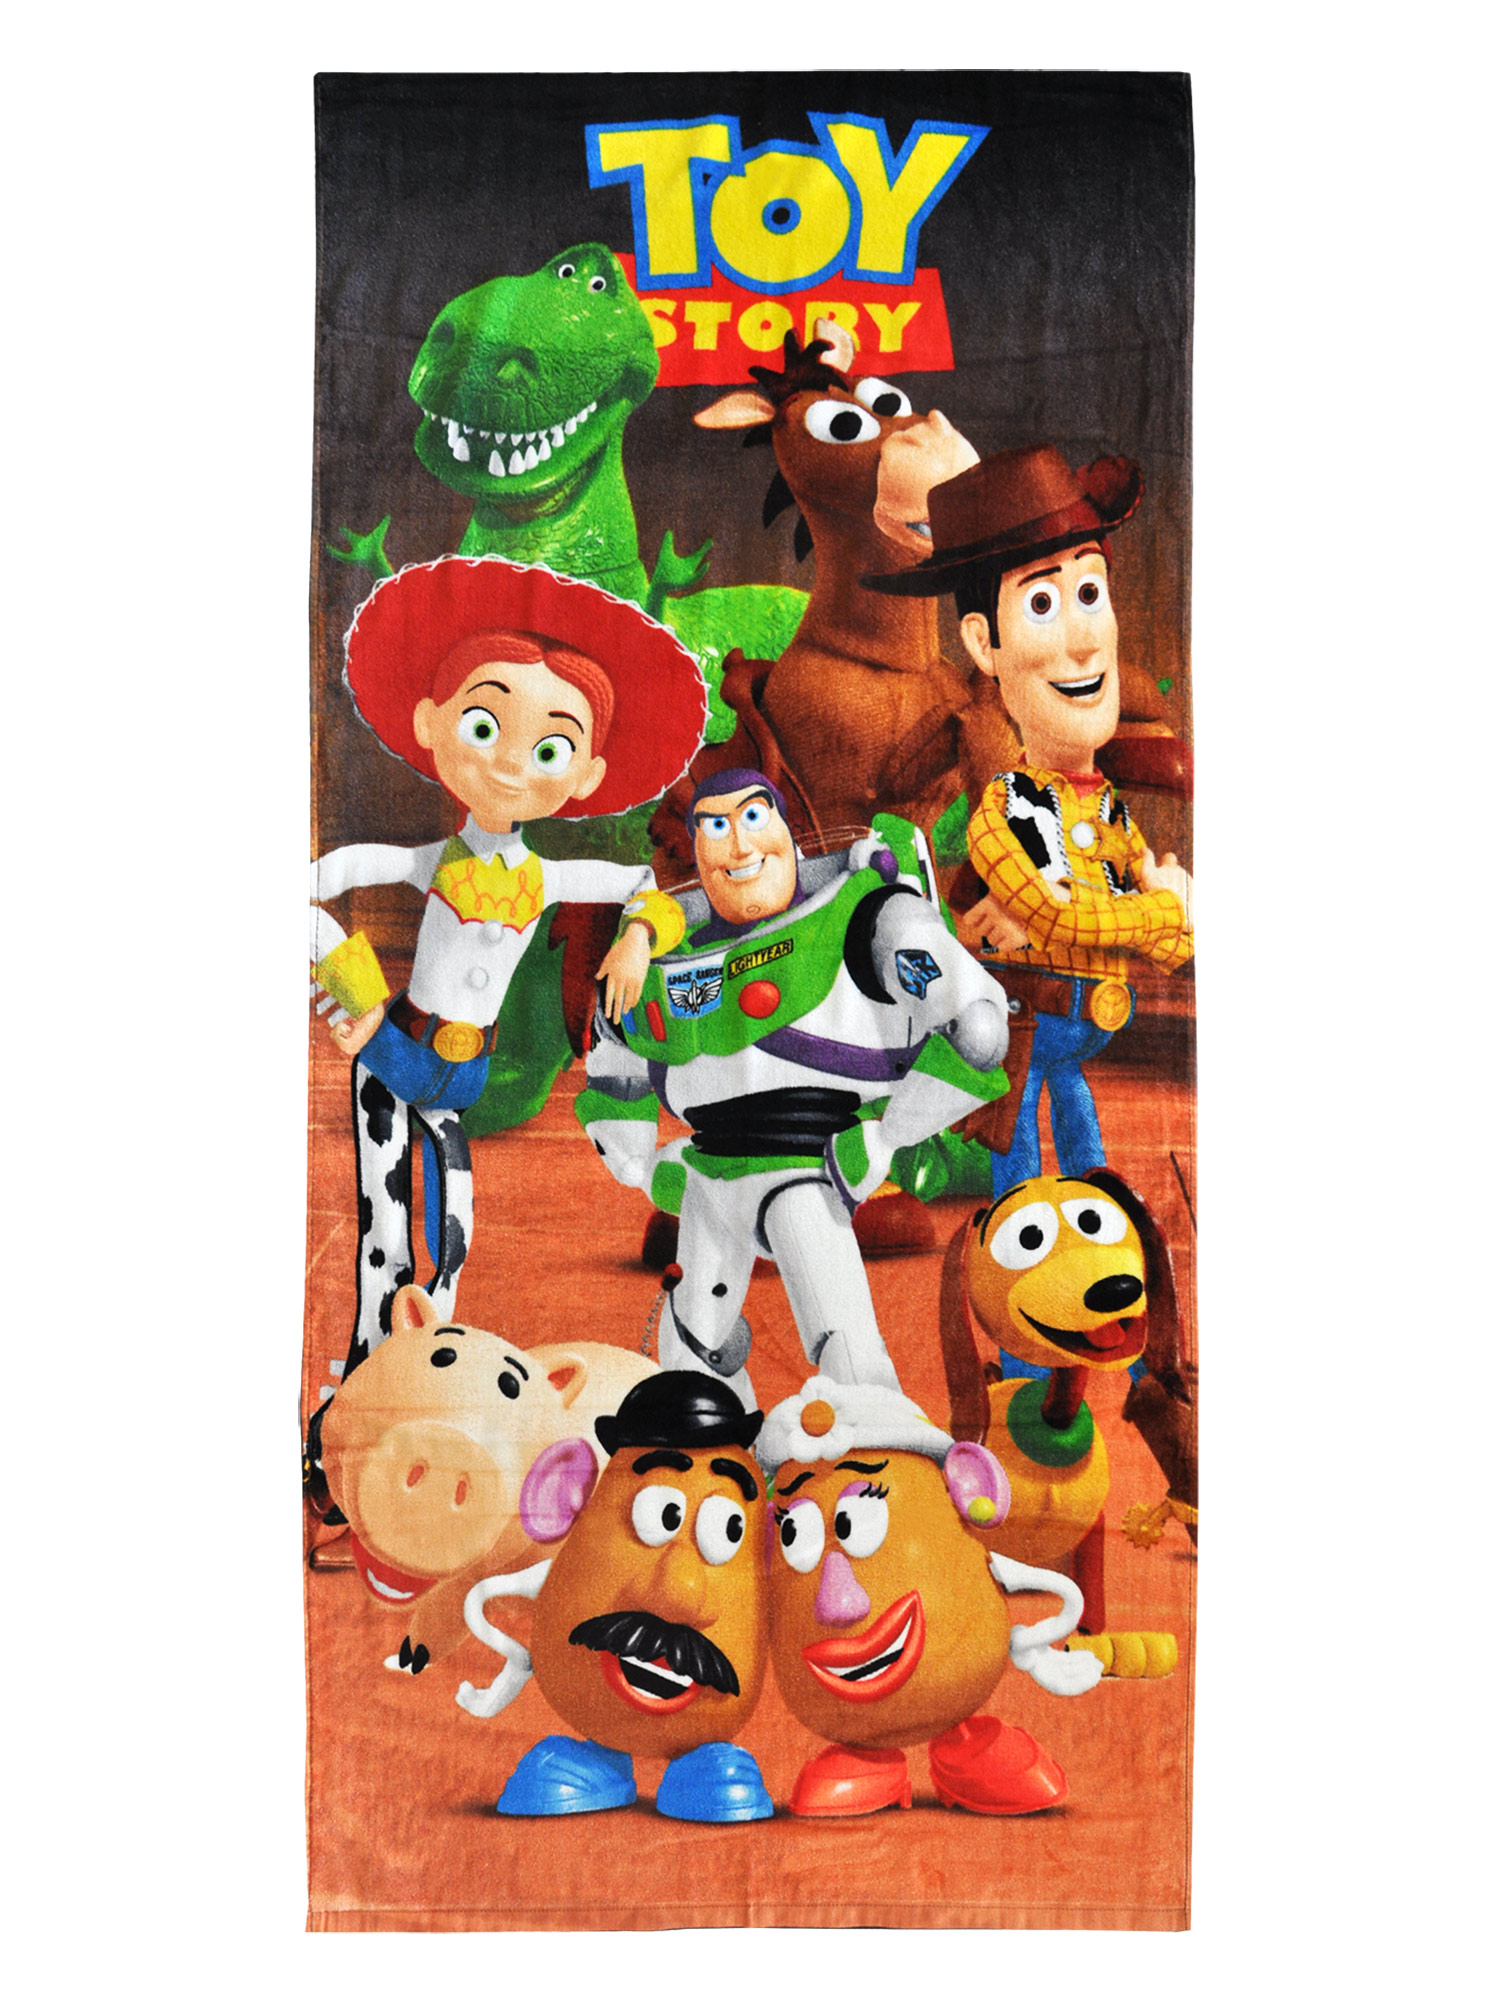 Bullseye and Slinky Toy Story Character die cuts Set of 6 including Jessie Woody Buzz